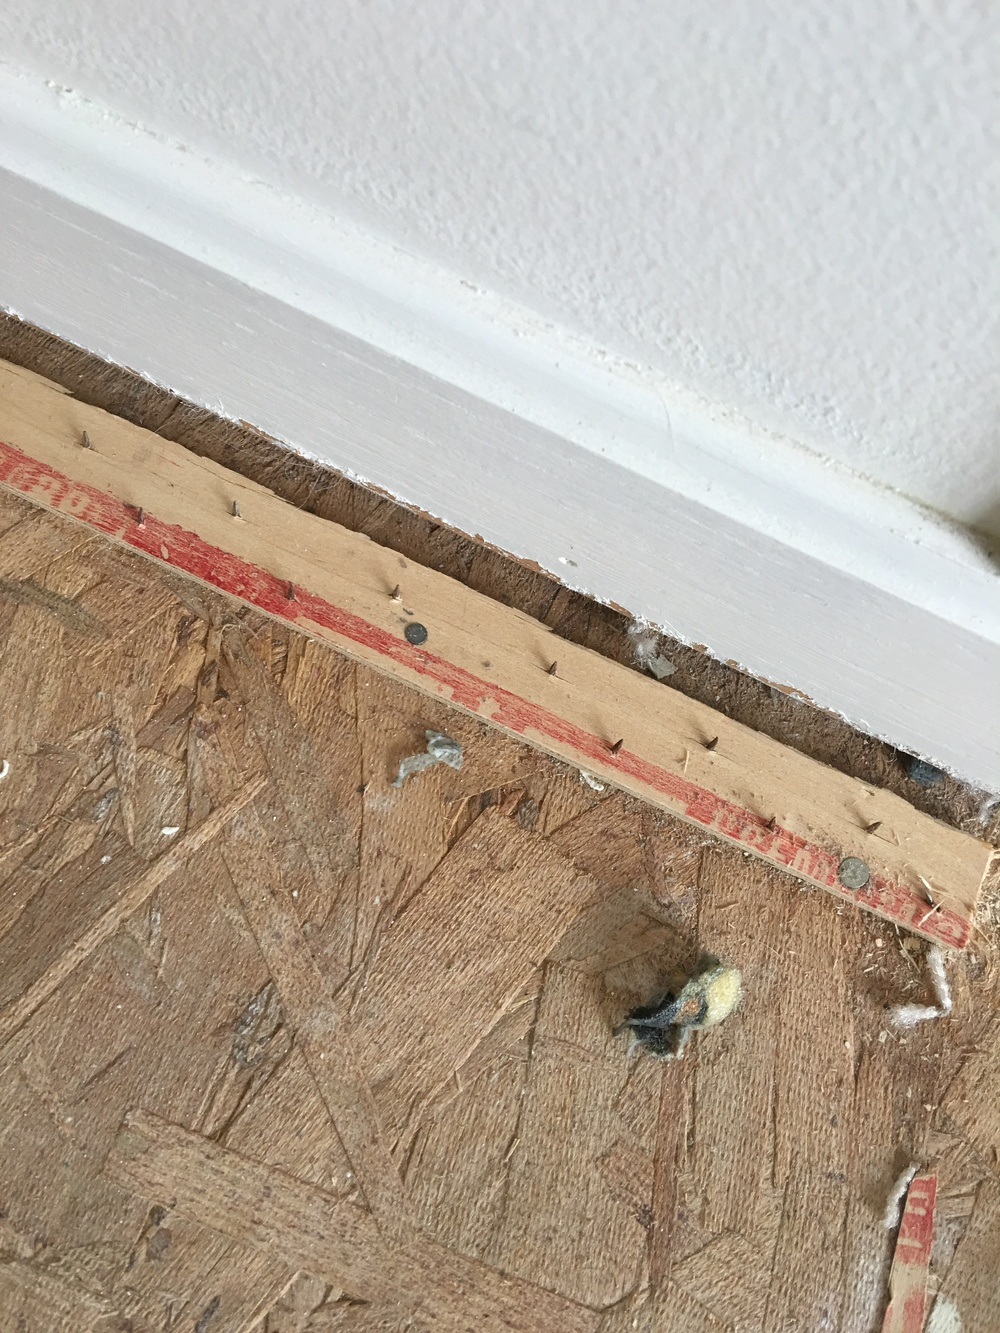 Goodbye Green Carpet Hello Original Hardwood Floors likewise Mon Carpet Roll Widths in addition Wood Floor Padding as well Staircase Makeover also How To Remove Carpet Pad Glue From Concrete Floor. on removing old carpet and padding